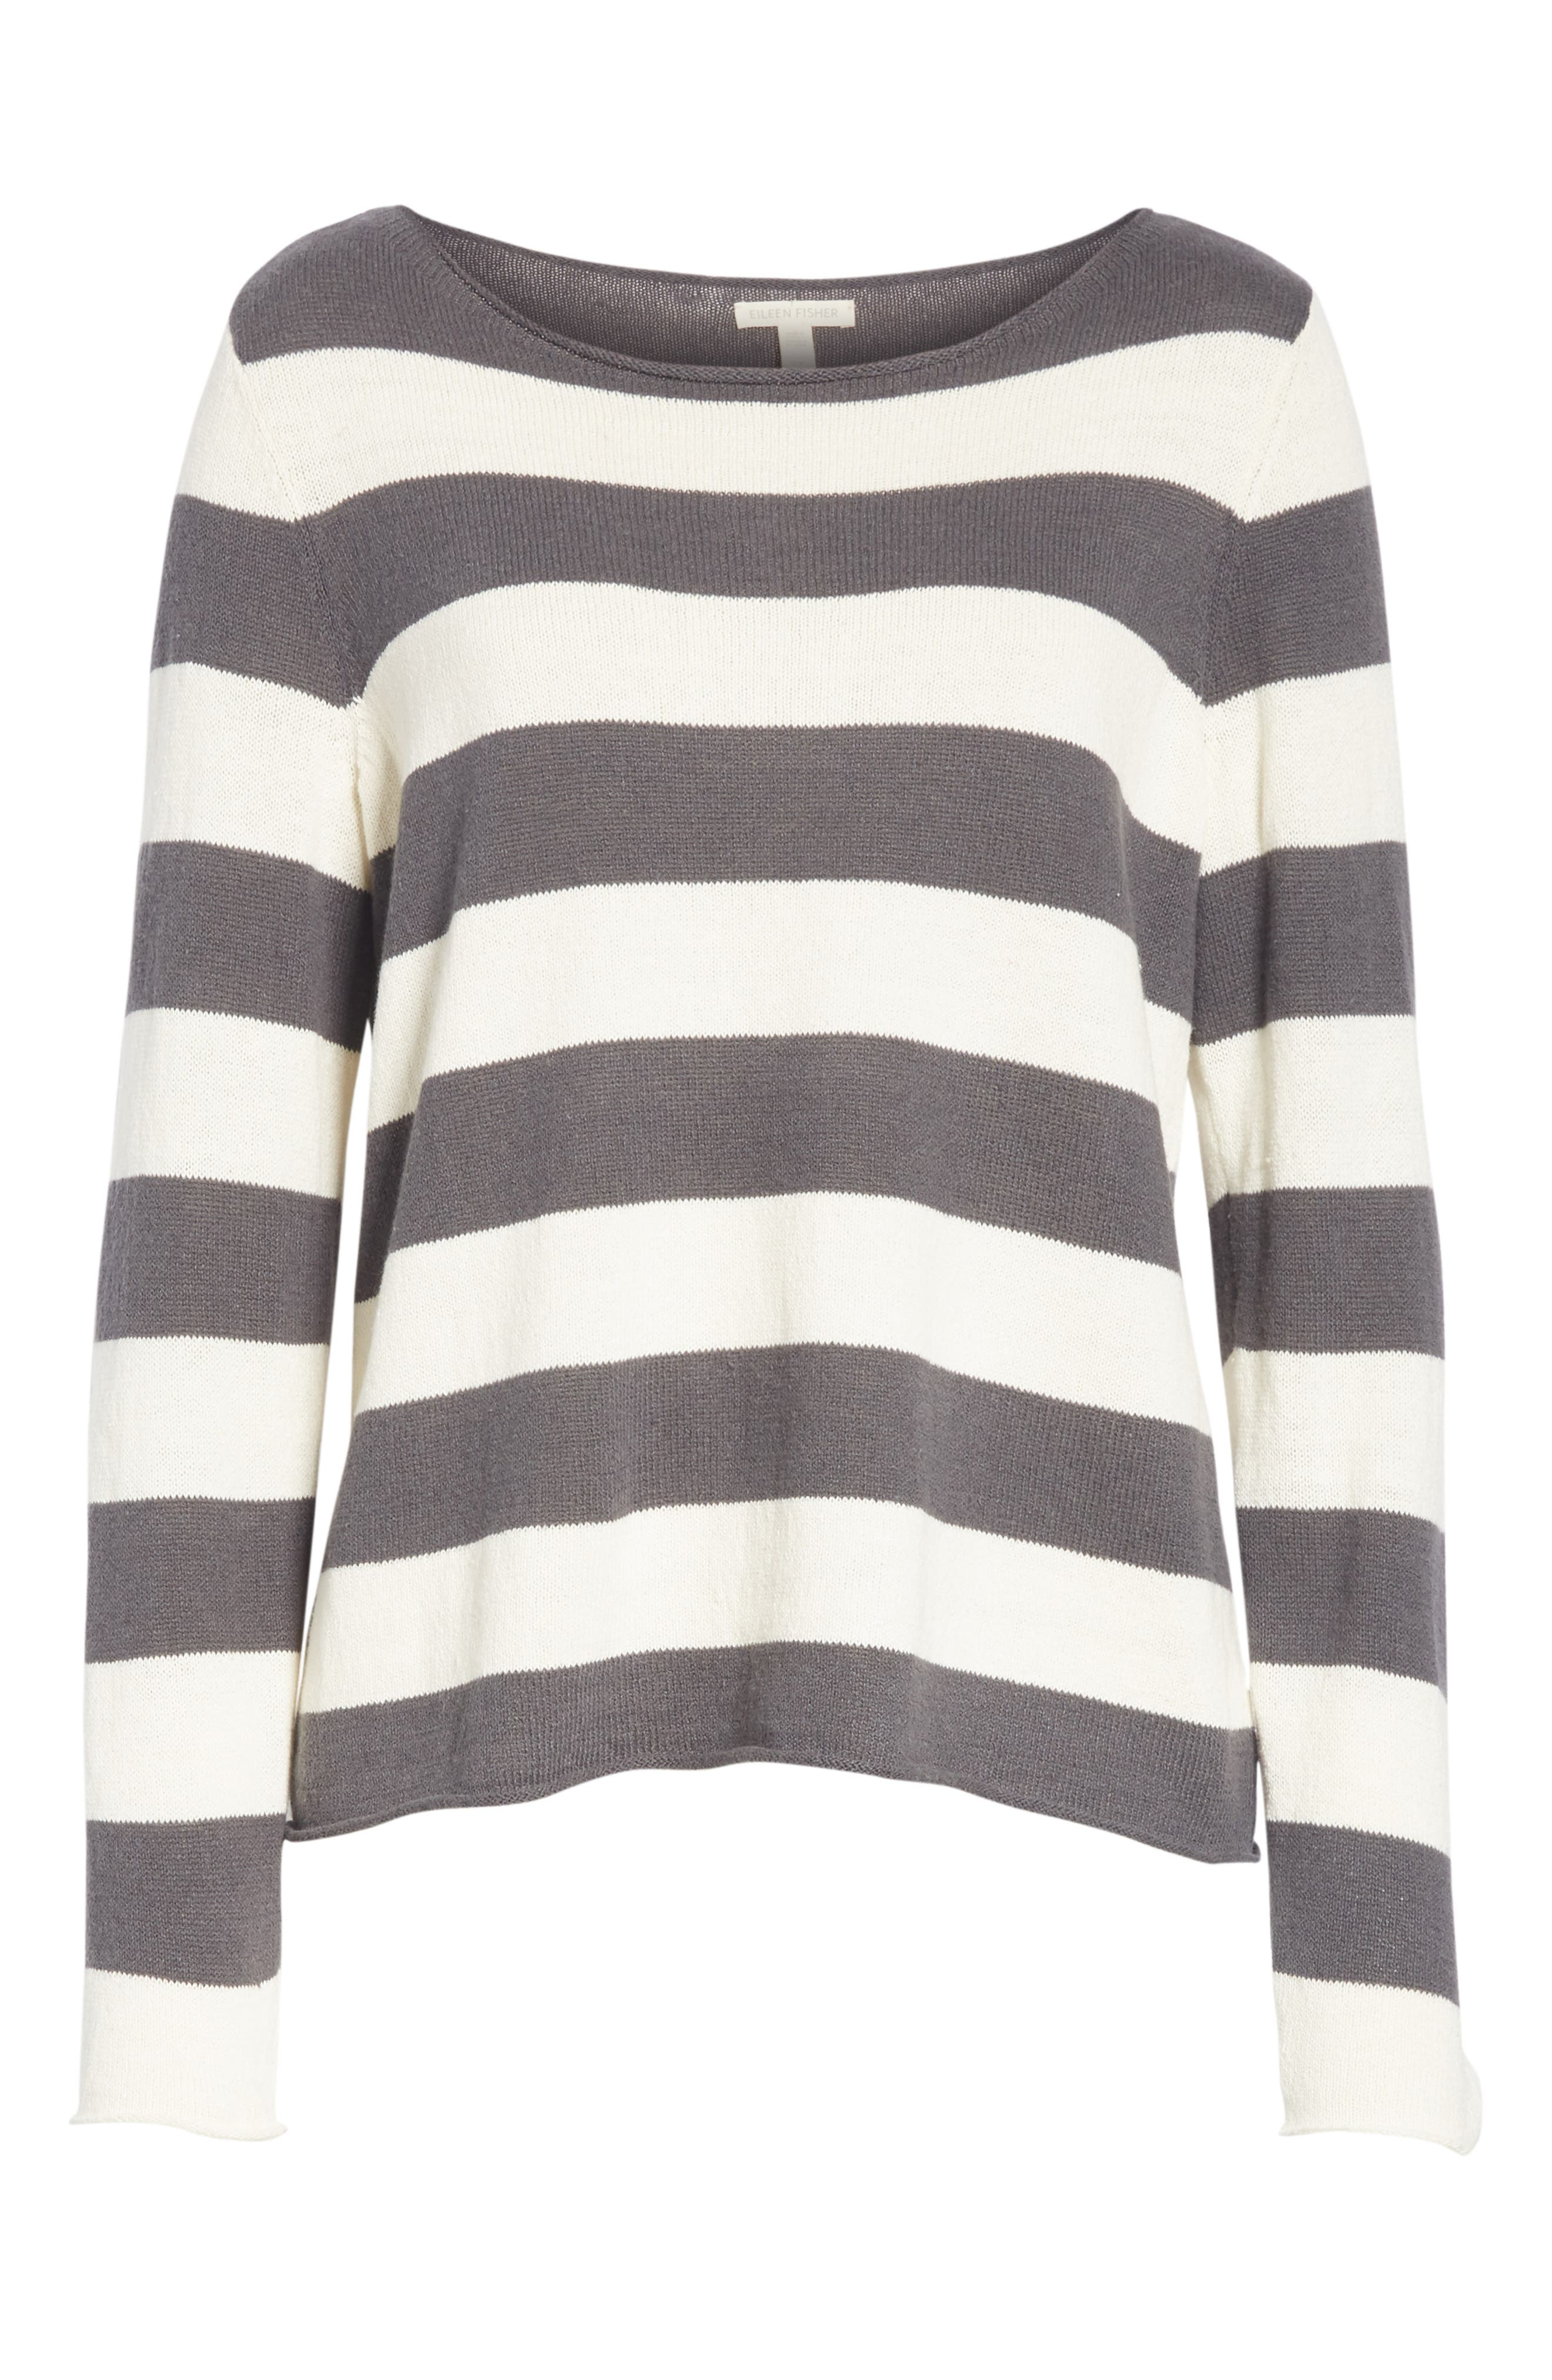 Stripe Cotton & Hemp Sweater,                             Alternate thumbnail 6, color,                             166